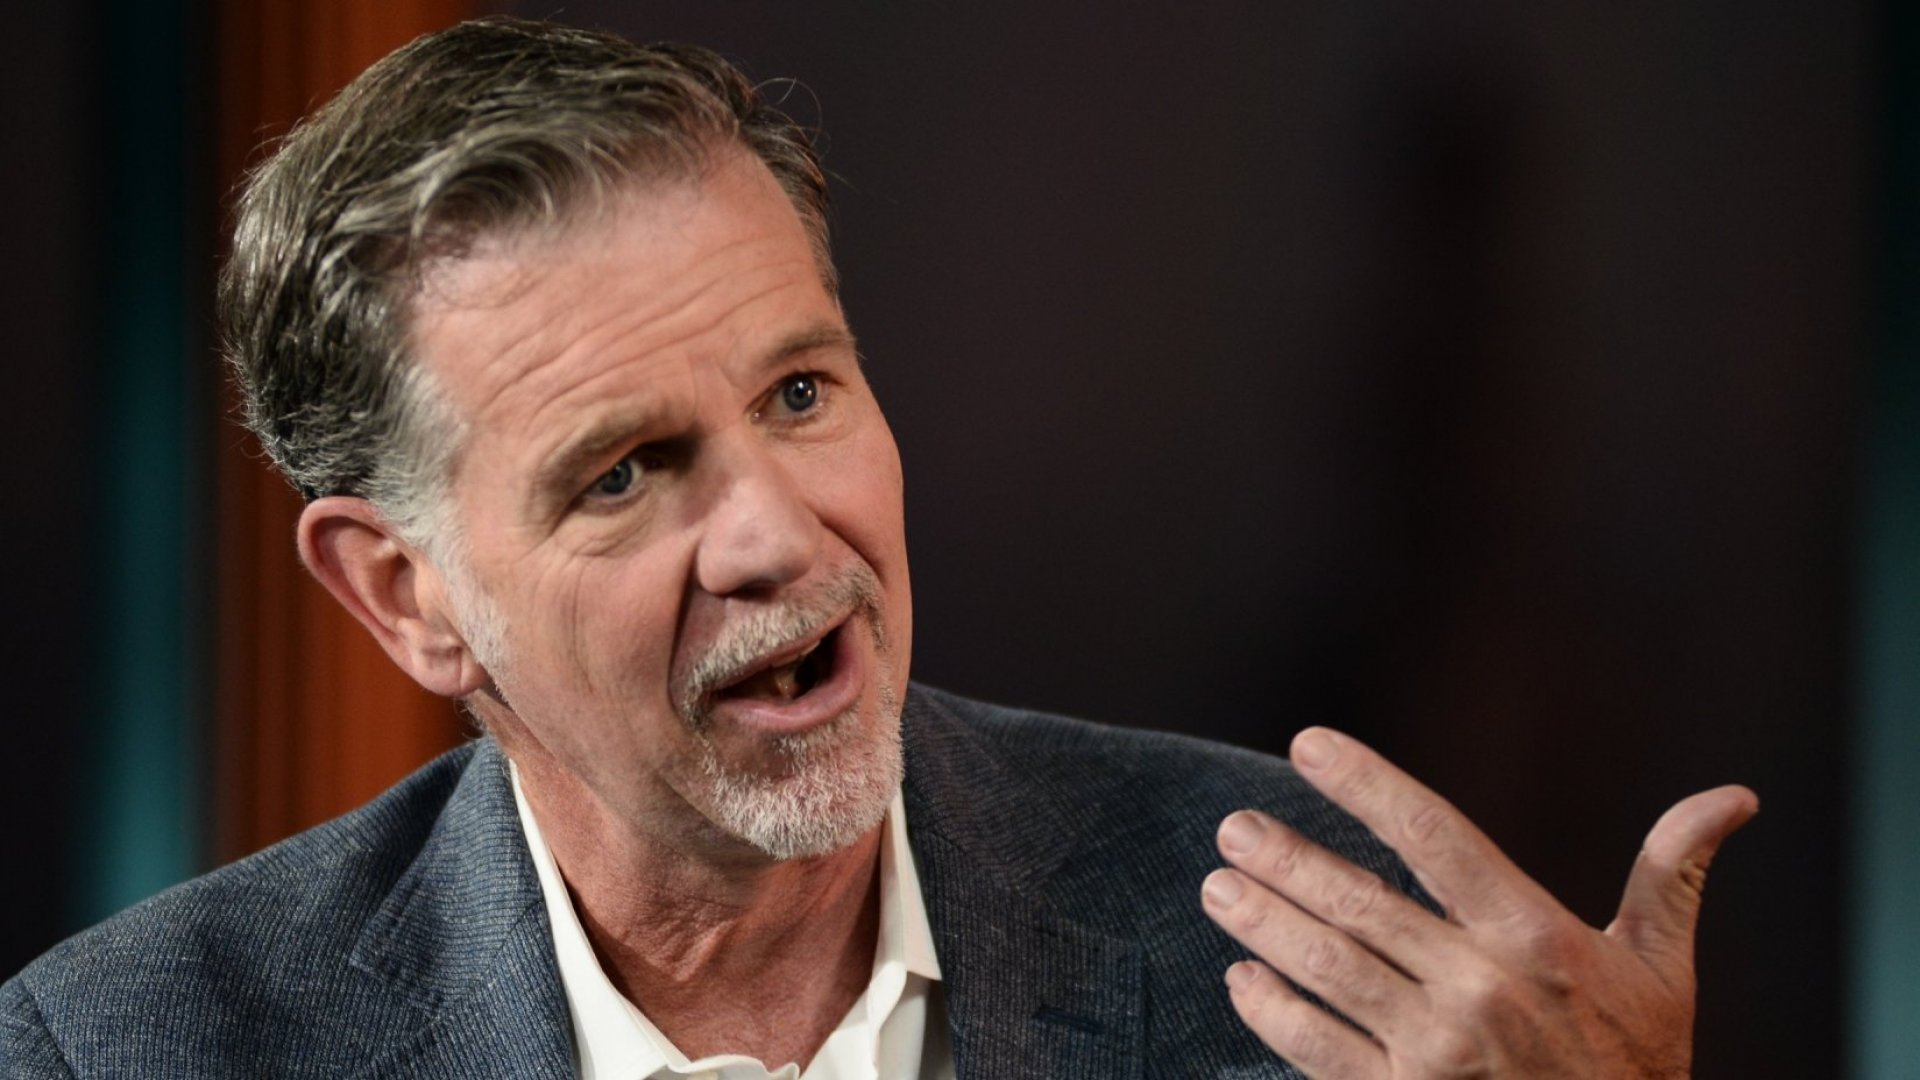 Netflix, led by CEO Reed Hastings, is one of the companies invited by Github to take part in a tech roundtable to discuss whether to file an amicus brief in support of a lawsuit against the Trump administration's recent immigration order.